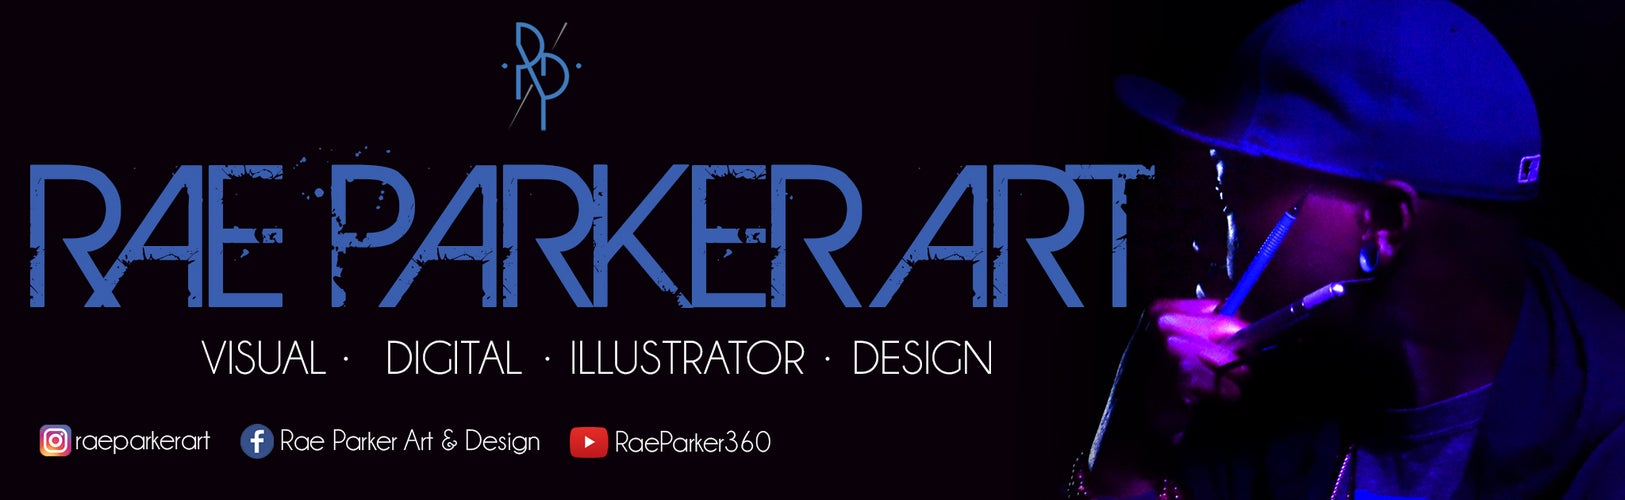 Rae Parker Art & Design, LLC